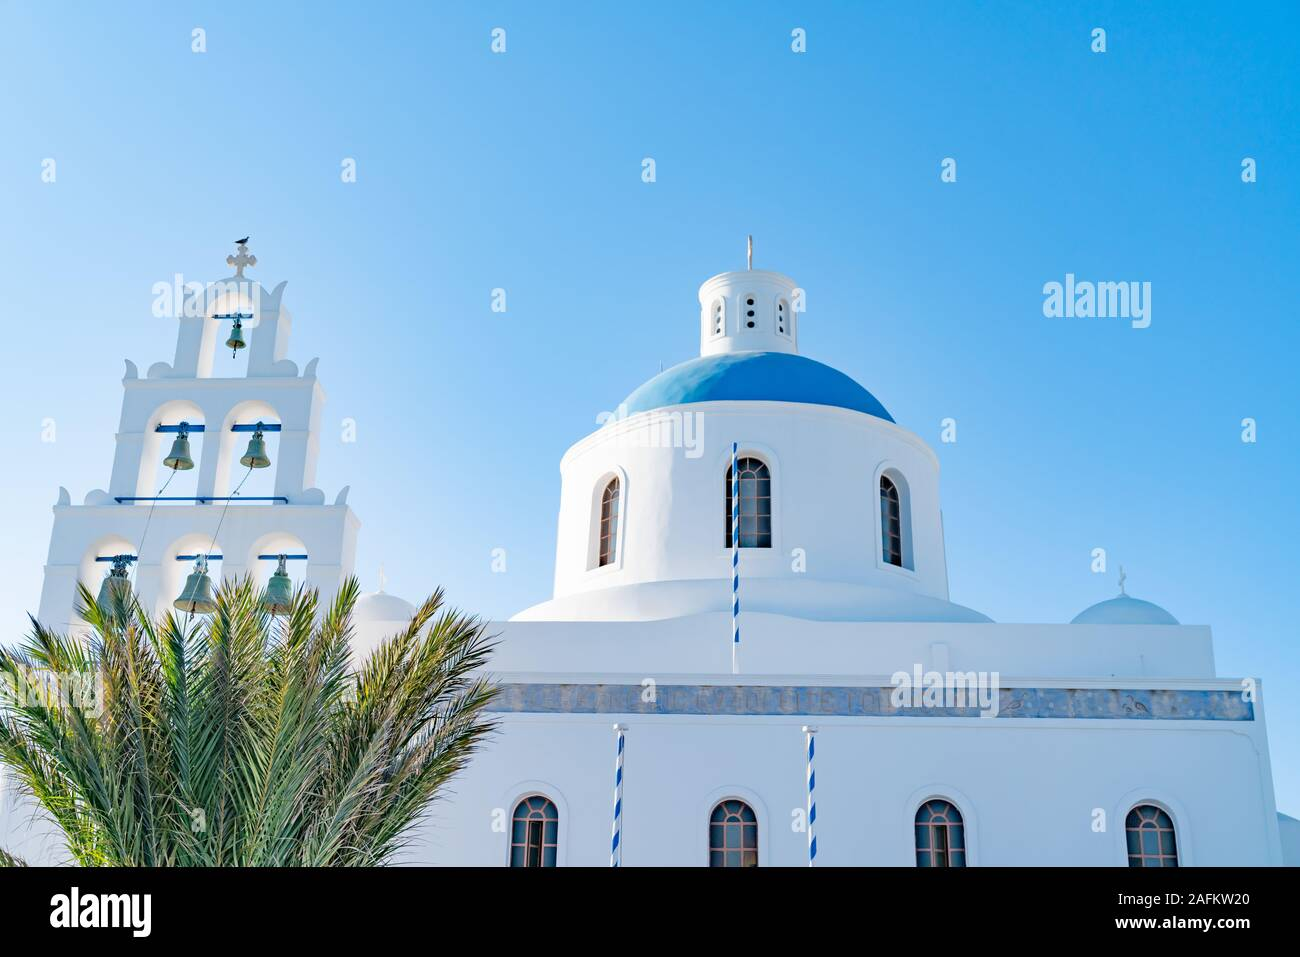 Oia Greece - August 7 2019; Church of Panagia with it's six bell tower in Oia, Santorini in whitwashed exterior walls bright blue dome. Stock Photo